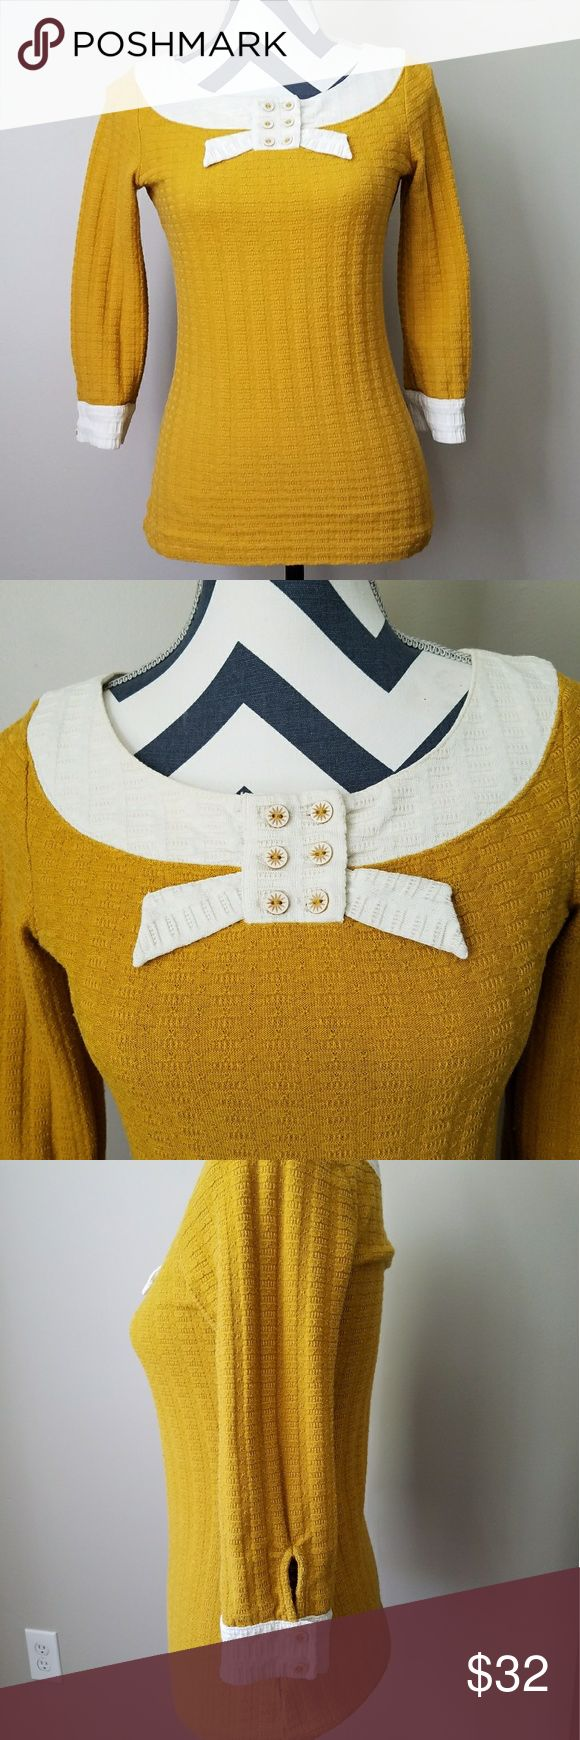 """Pilcro and the Letterman mustard colored top This textured, 3/4 sleeve, mustard and ivory, cotton polyester blend, knit top by Pilcro and the Letterpress from Anthropologie is too cute! Size small and I'd say it'd best fit sizes 2 - 4..material does stretch. Underarm measurement is 16"""" and total length is approx 24"""" long. Excellent gently used condition! Anthropologie Tops"""